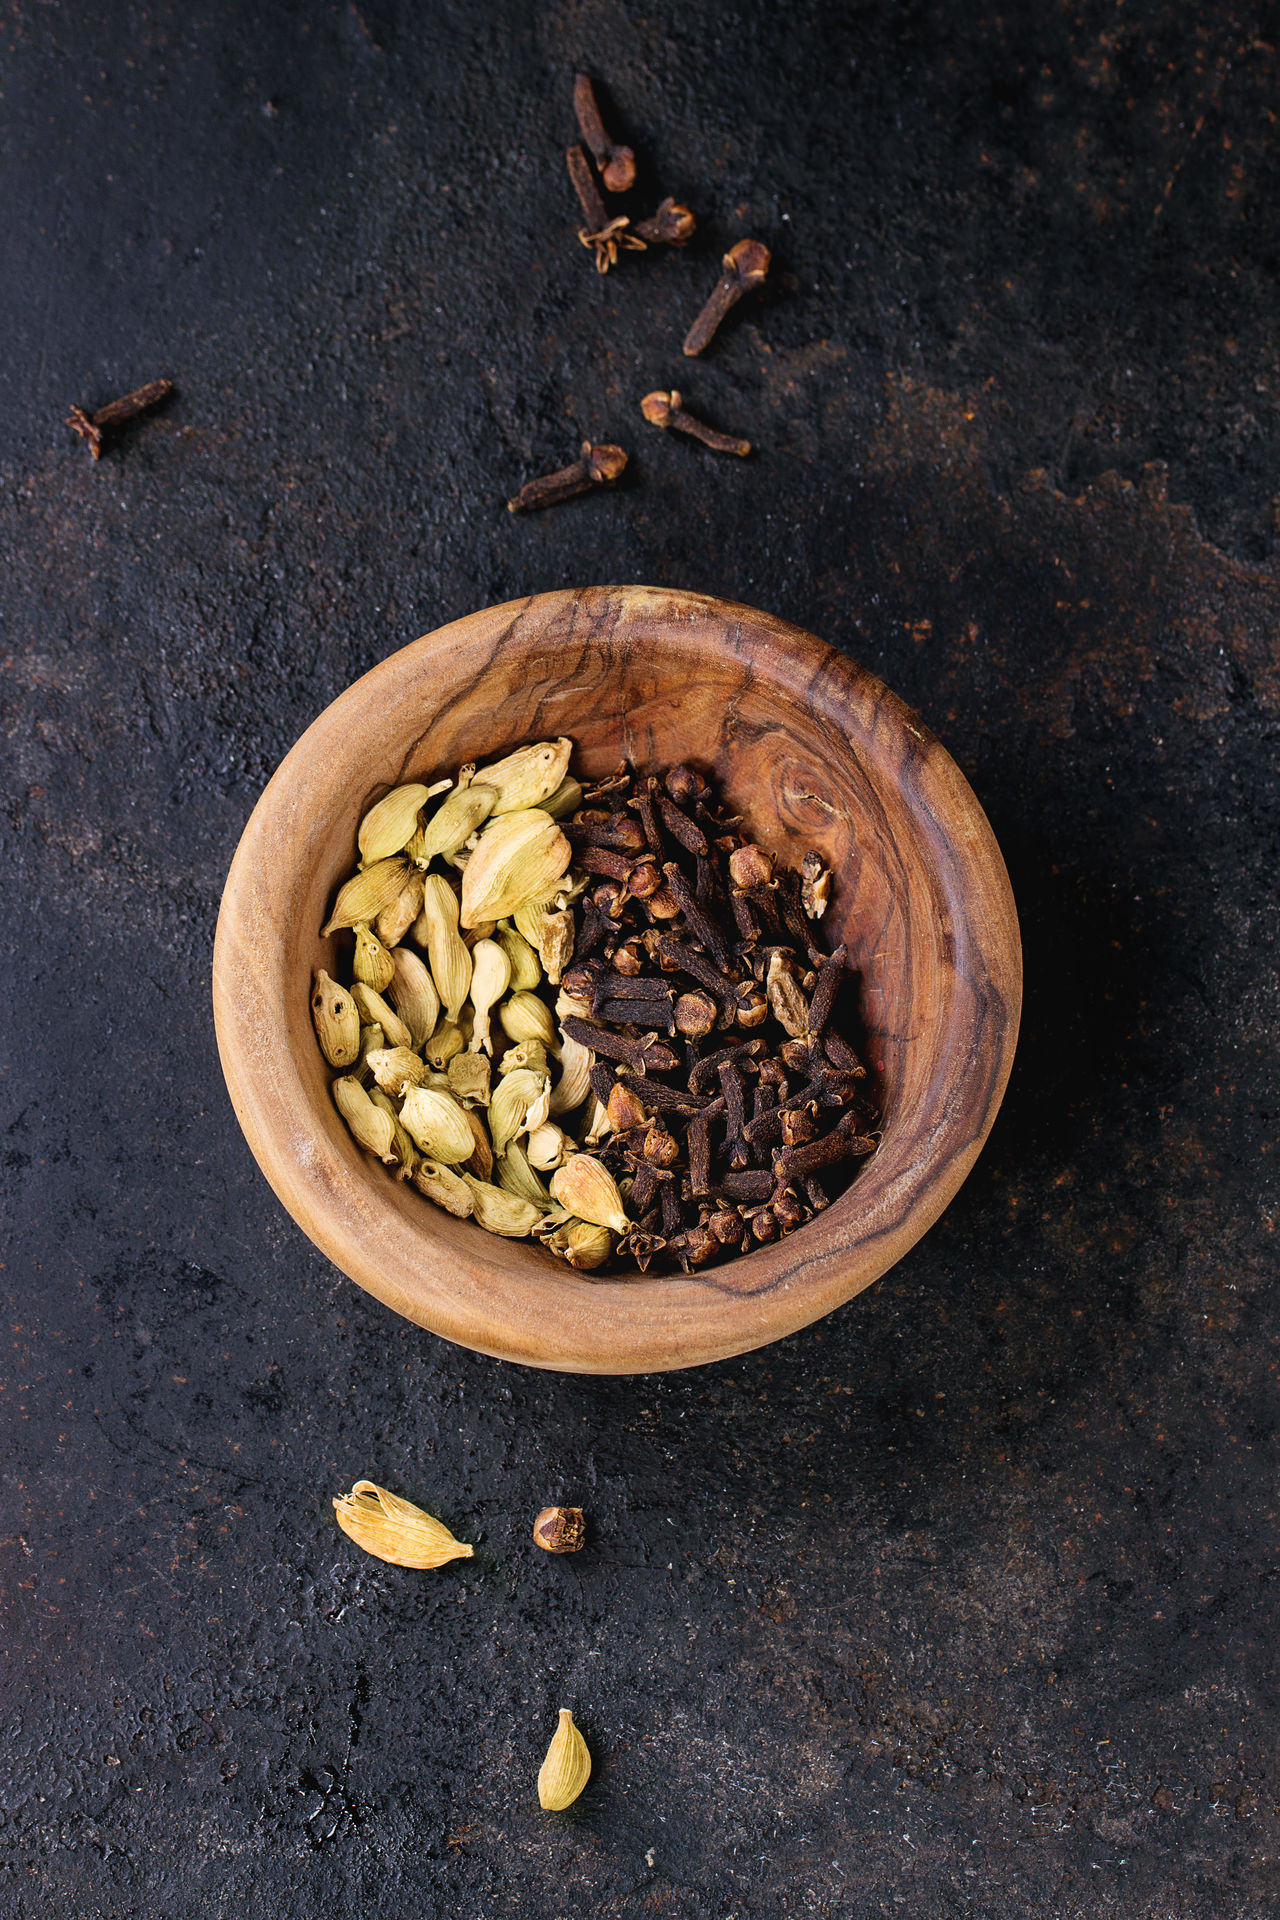 Cardamom seeds and cloves in olive wood bowl over black background. Top view Aromatic Black Background Bowl Cardamom Cloves Cooking Food Food Background Food Photography Healthy Eating Indian Spices Ingredient Olive Wood Overhead View Seasoning Seeds Spice Spicy Top View Various